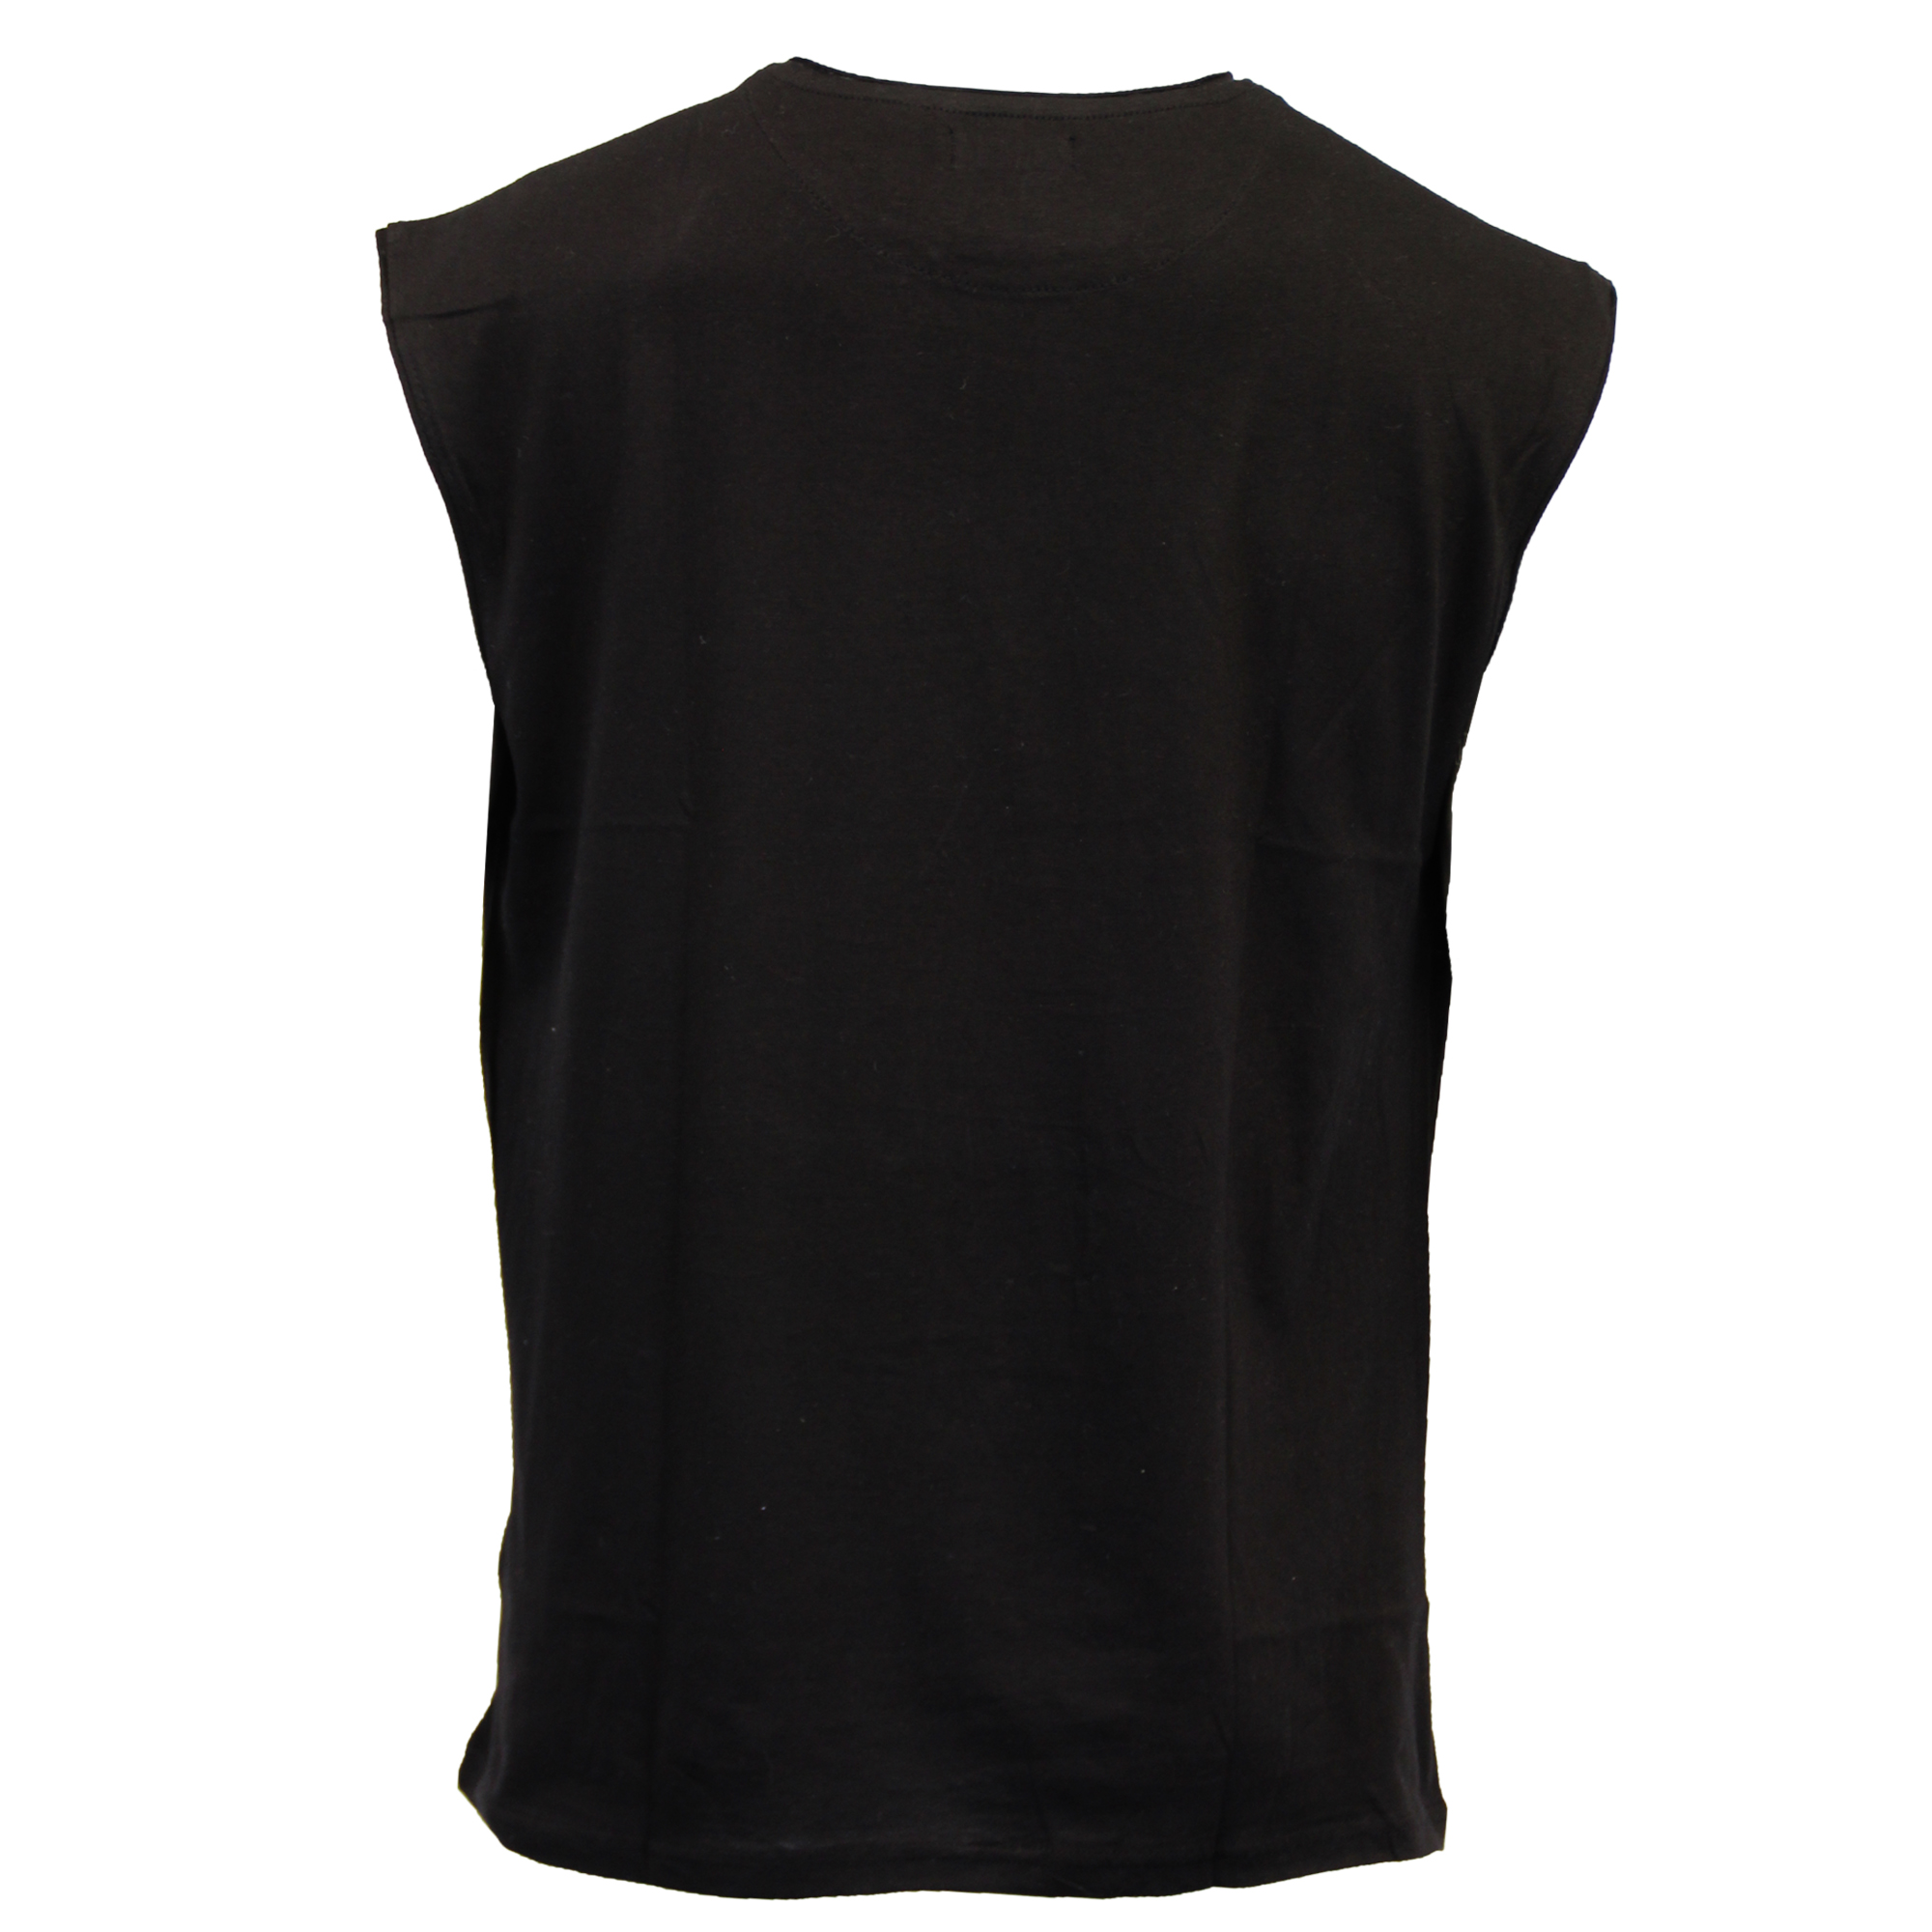 Mens-Vest-Brave-Soul-Tank-Top-Varley-Gym-Training-Crew-Neck-Casual-Summer-New thumbnail 3